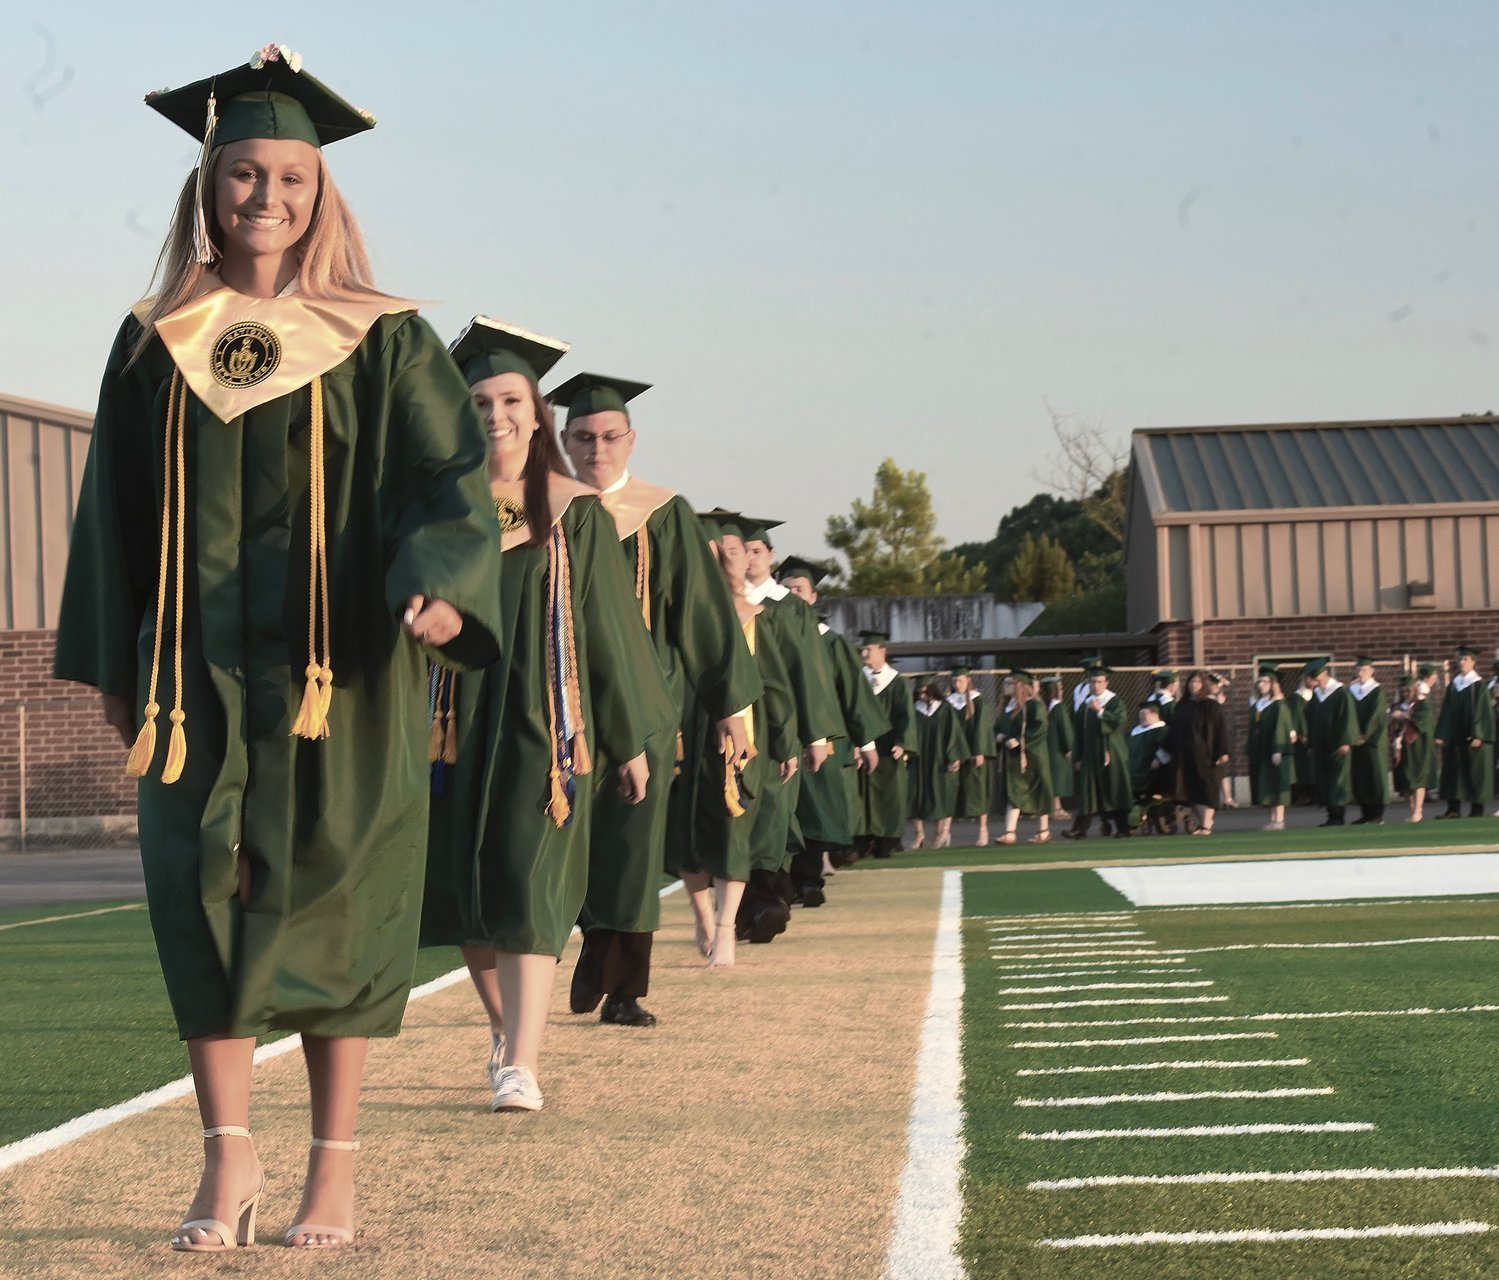 Adairsville 2019 graduate Havyn Isaac leads her classmates into Tiger Stadium for the ceremony on May 24.